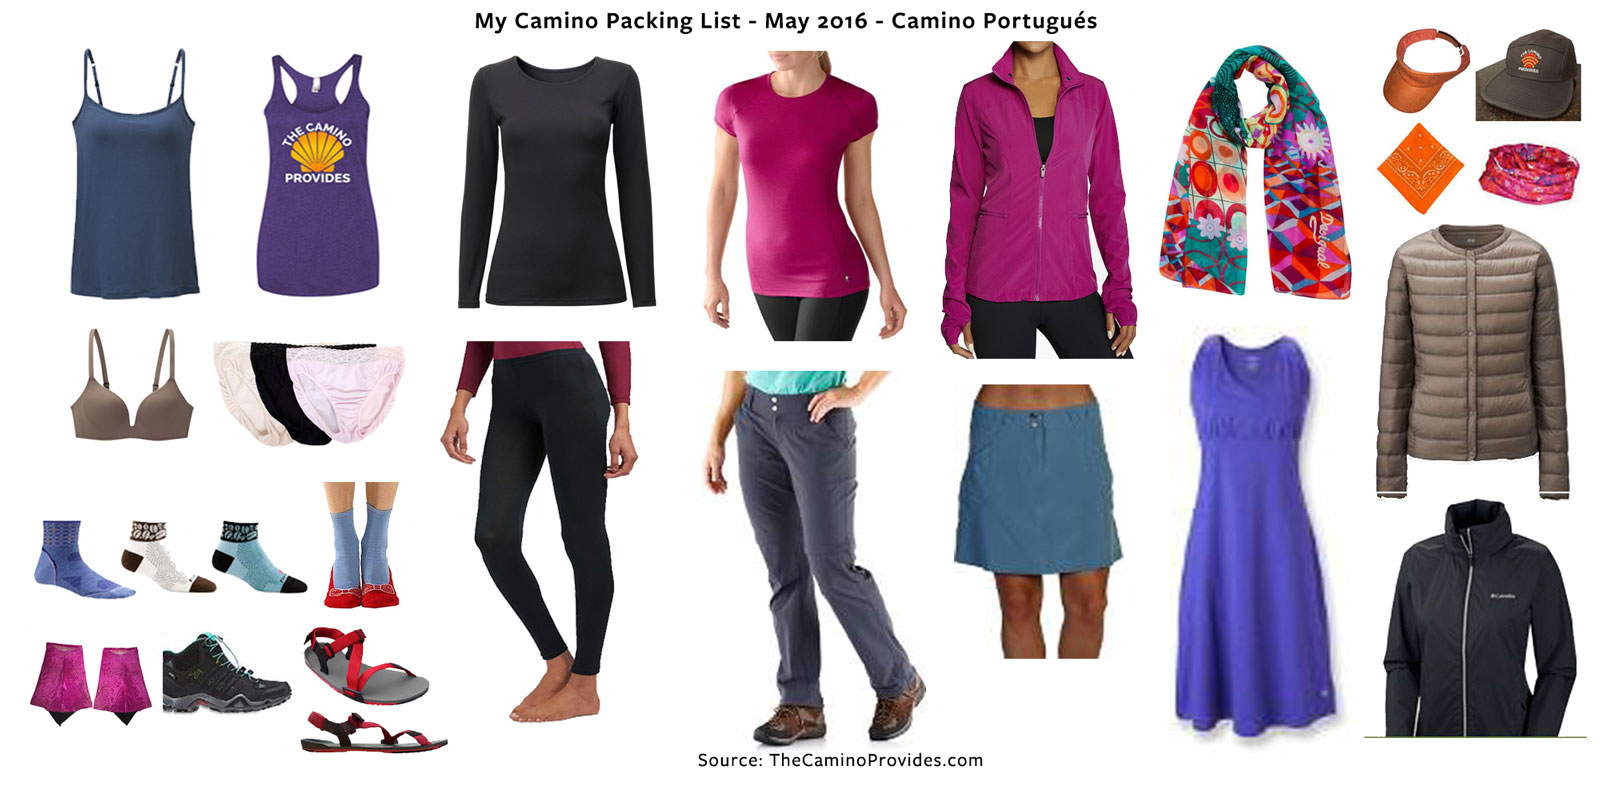 Camino Santiago Packing List My Camino Packing List Part 1 Apparel The Camino Provides